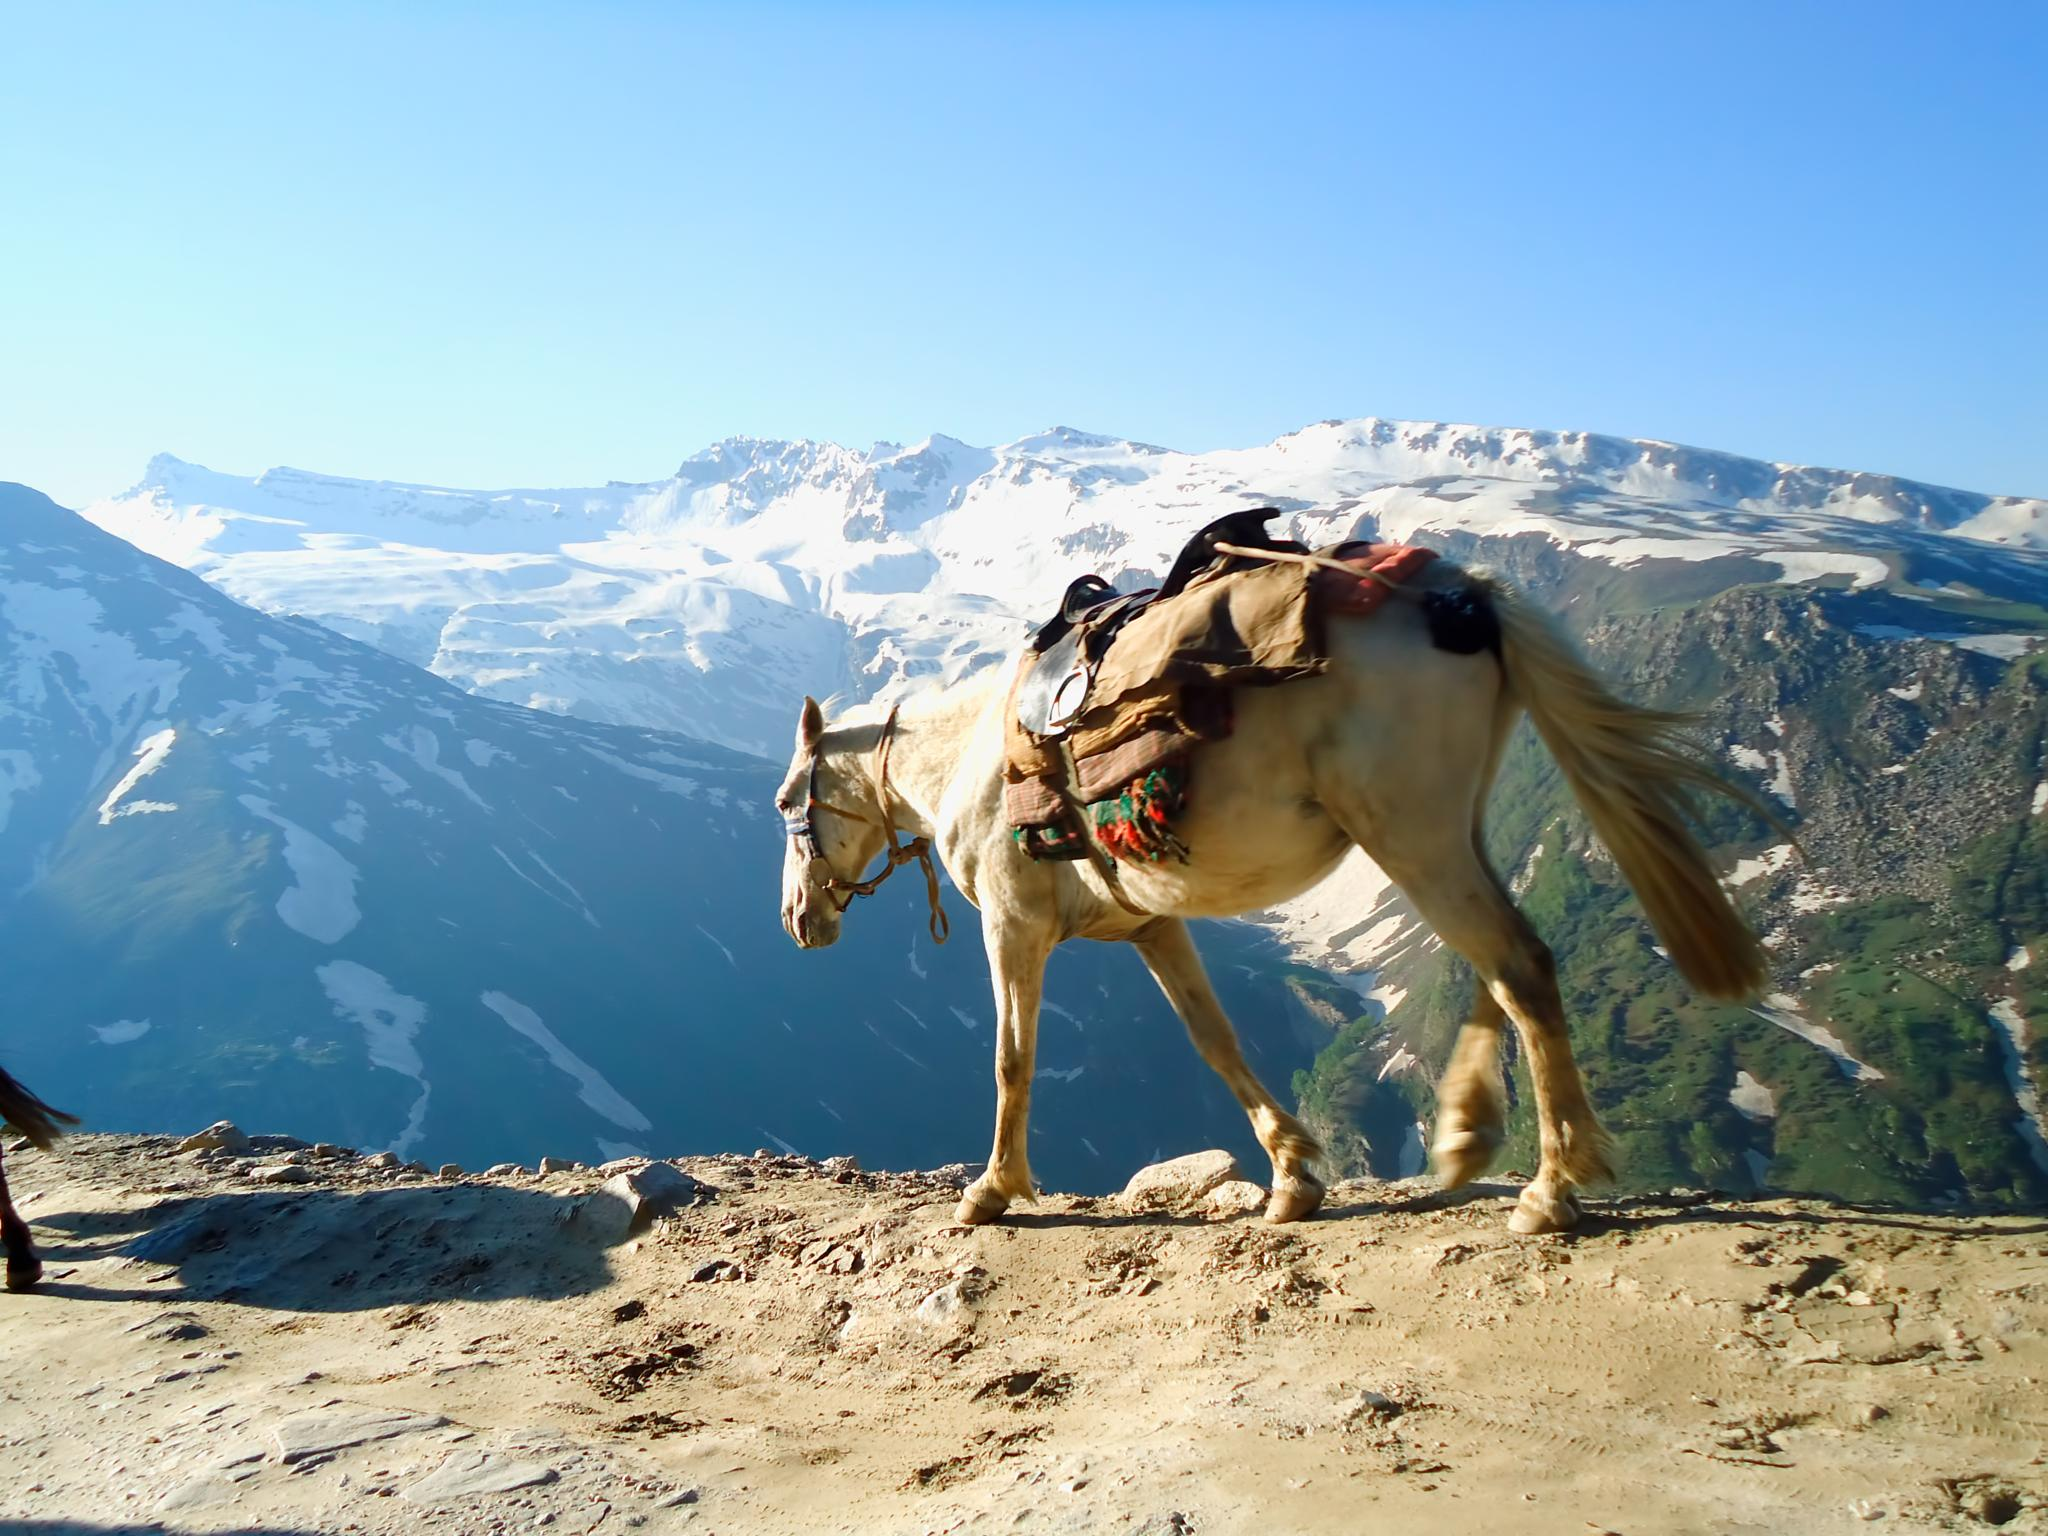 Mountain Traveller by Rs Photography